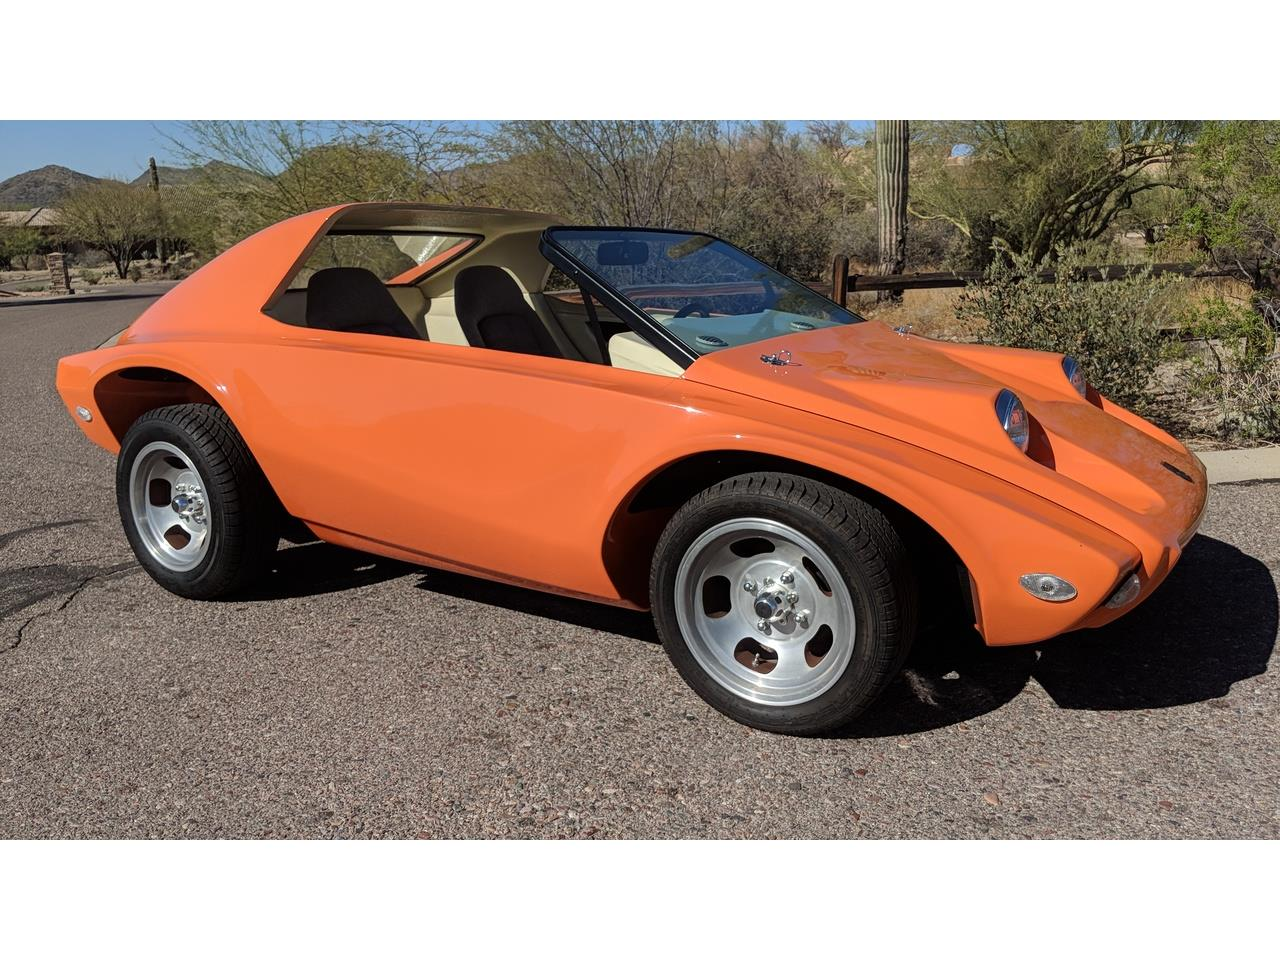 Large Picture of Classic 1970 Volkswagen Baja Bug - $11,900.00 Offered by a Private Seller - MXZ5